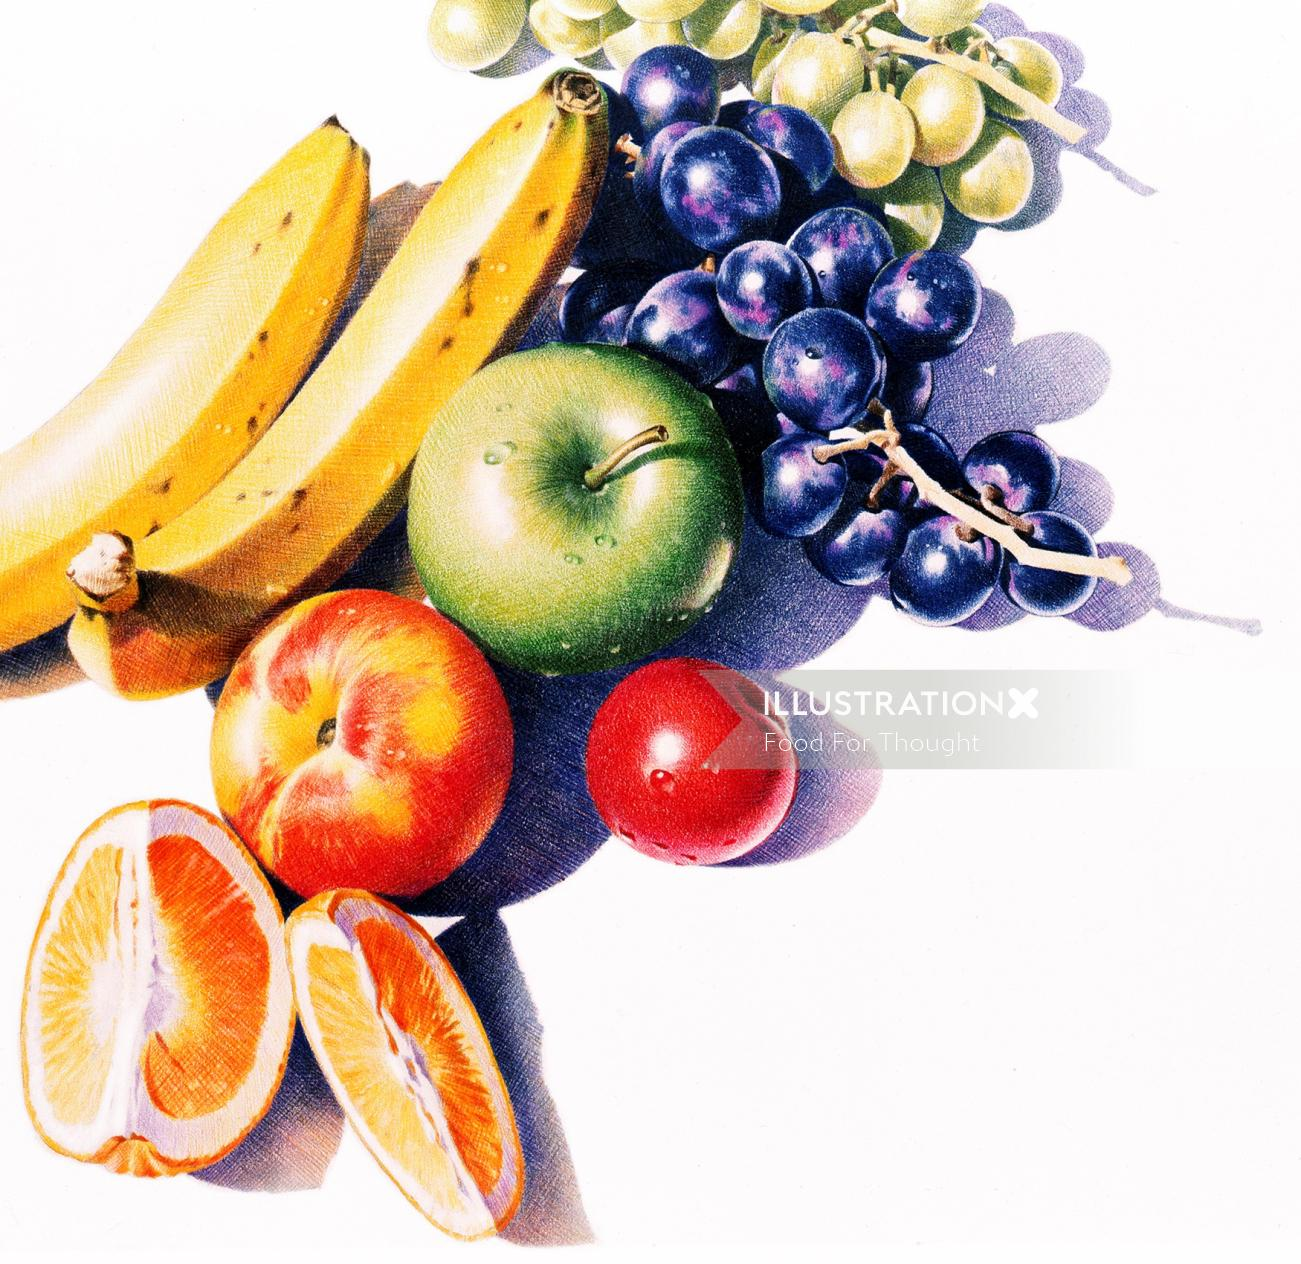 Color pencil made illustration of fruit